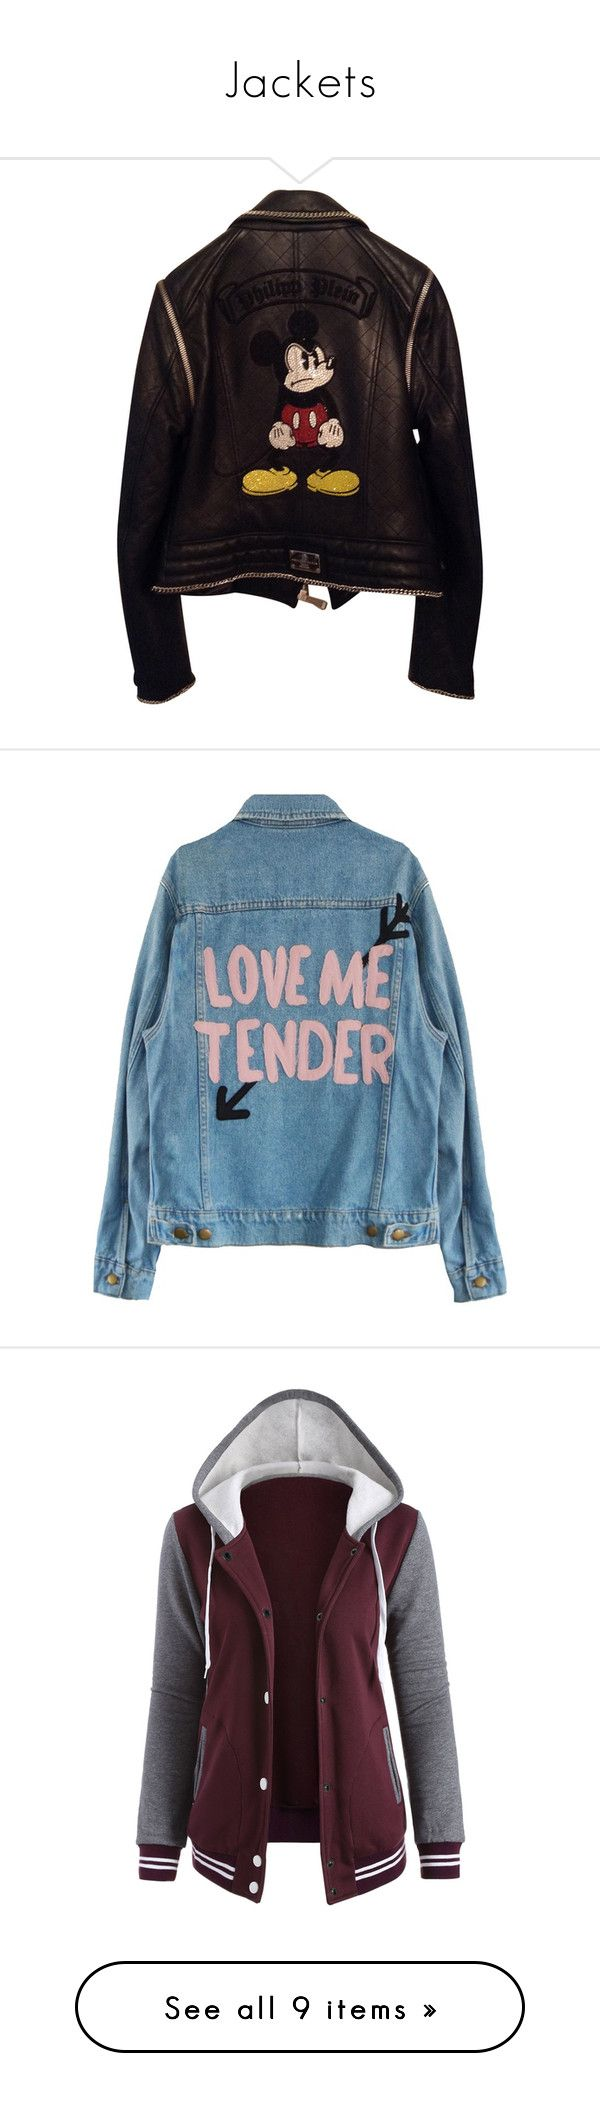 """""""Jackets"""" by merel-van-tienen ❤ liked on Polyvore featuring outerwear, jackets, tops, leather zip jacket, lined leather jacket, embroidered leather jacket, zipper jacket, zip jacket, blue jean jacket and blue denim jacket"""